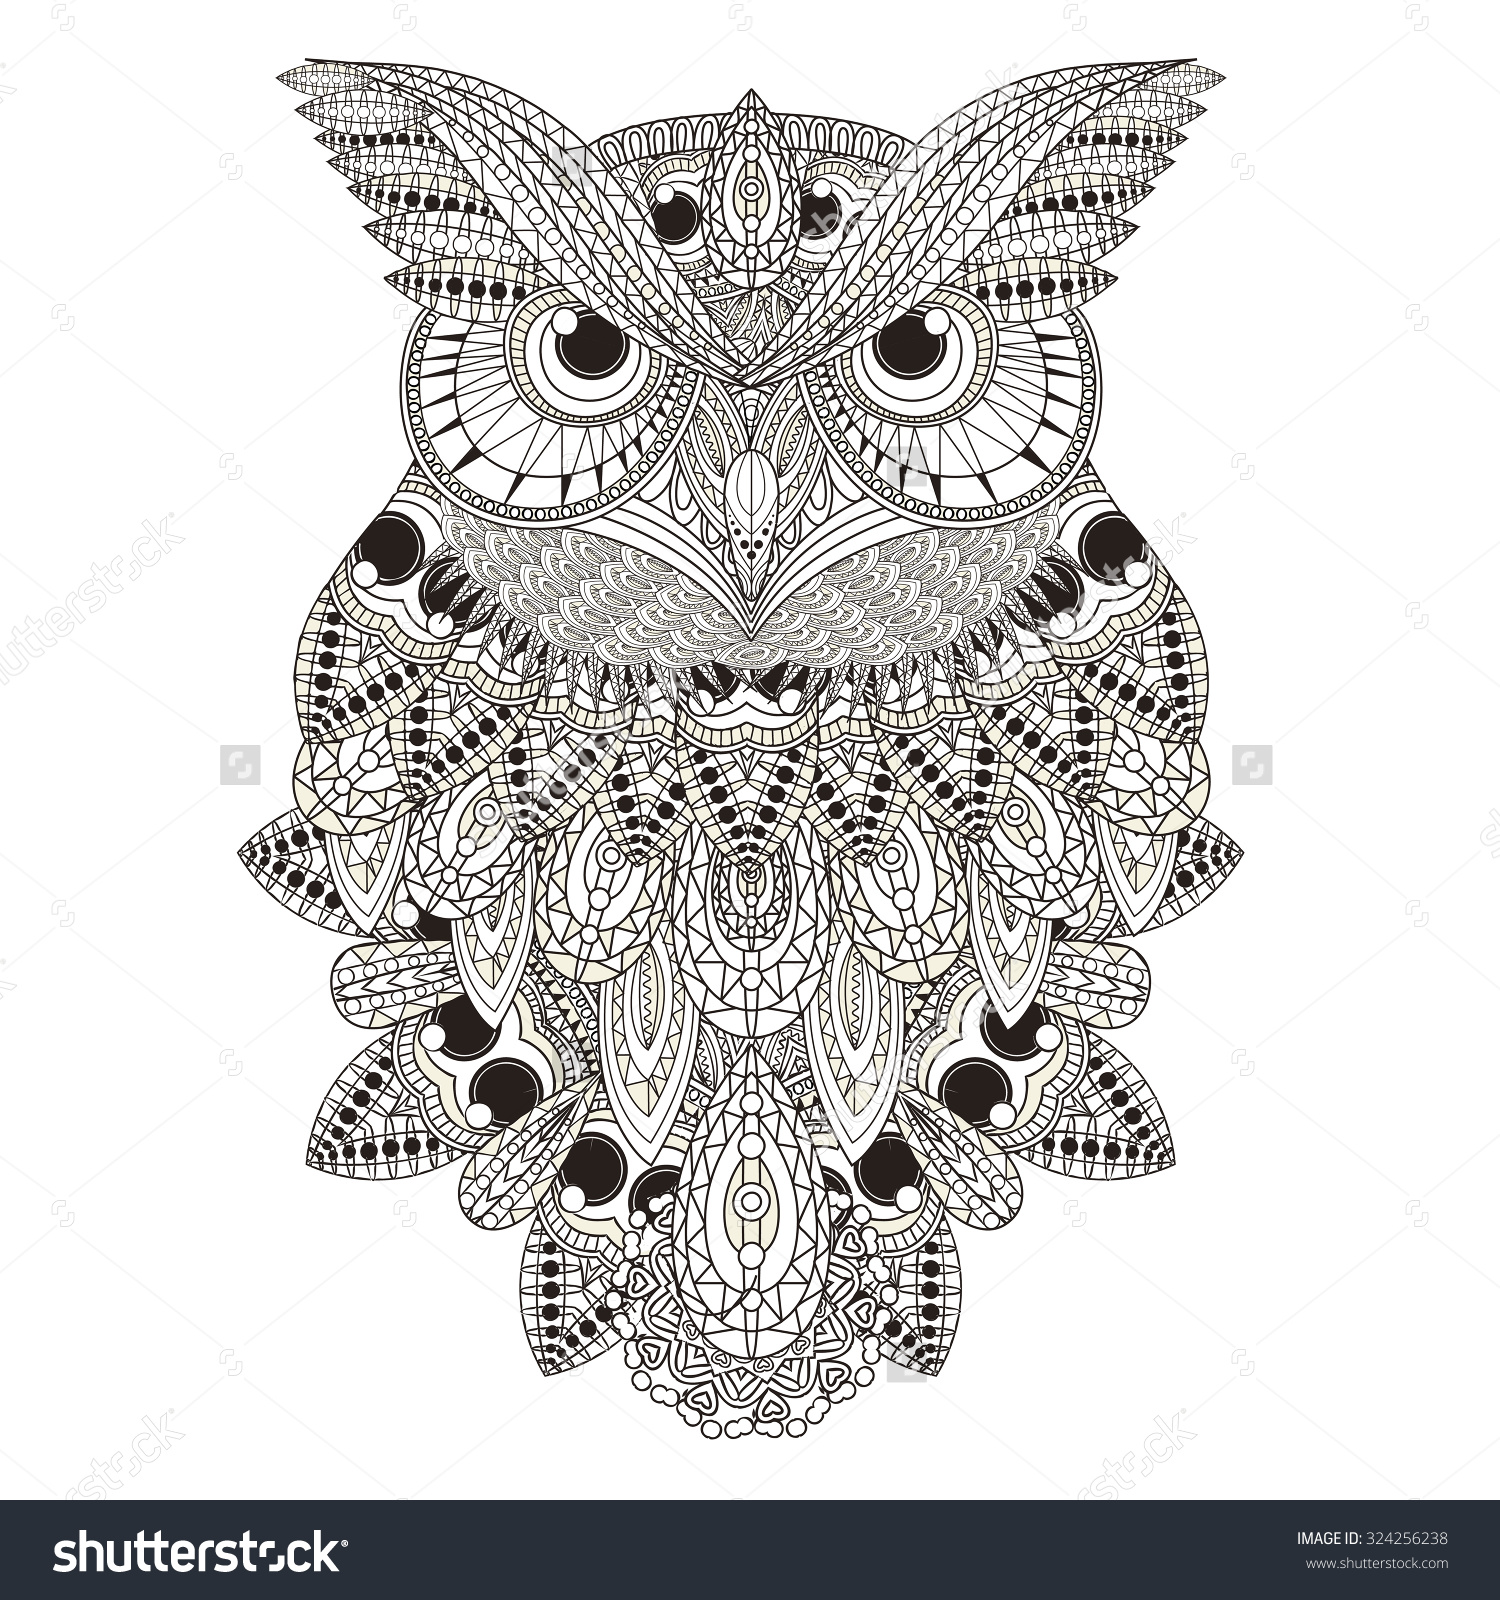 Detailed Owl Coloring Pages Sumptuous Page In Exquisite